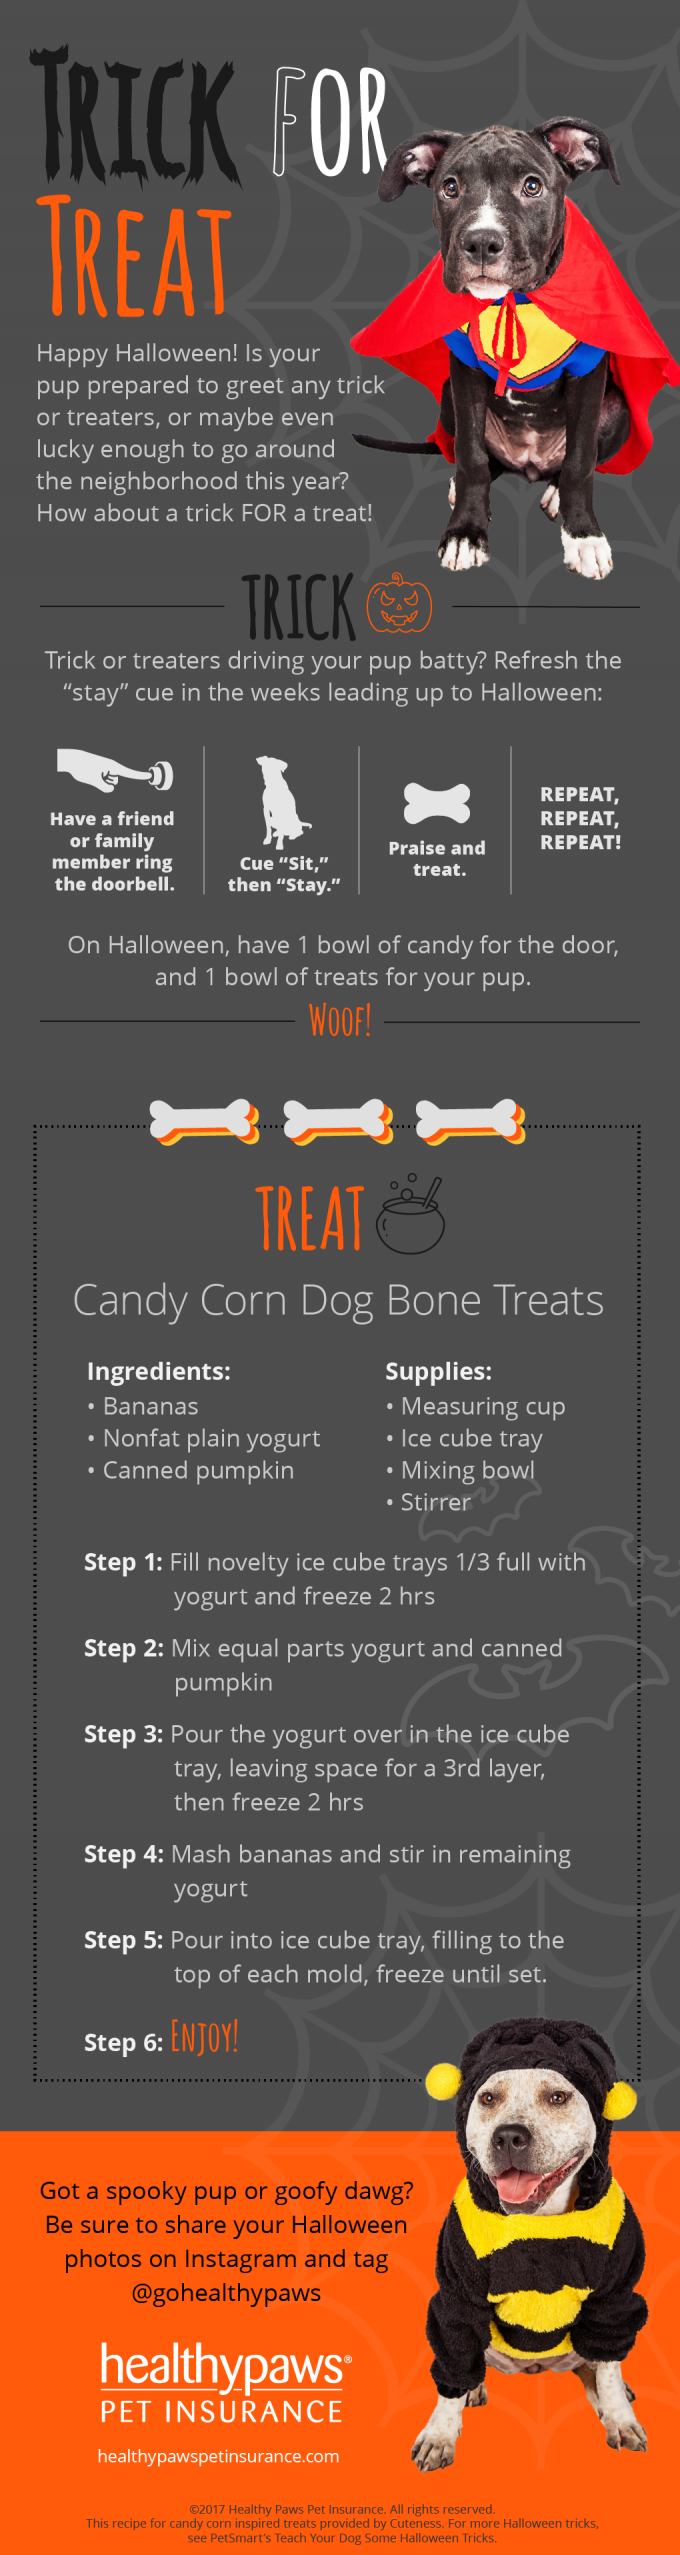 healthy paws halloween